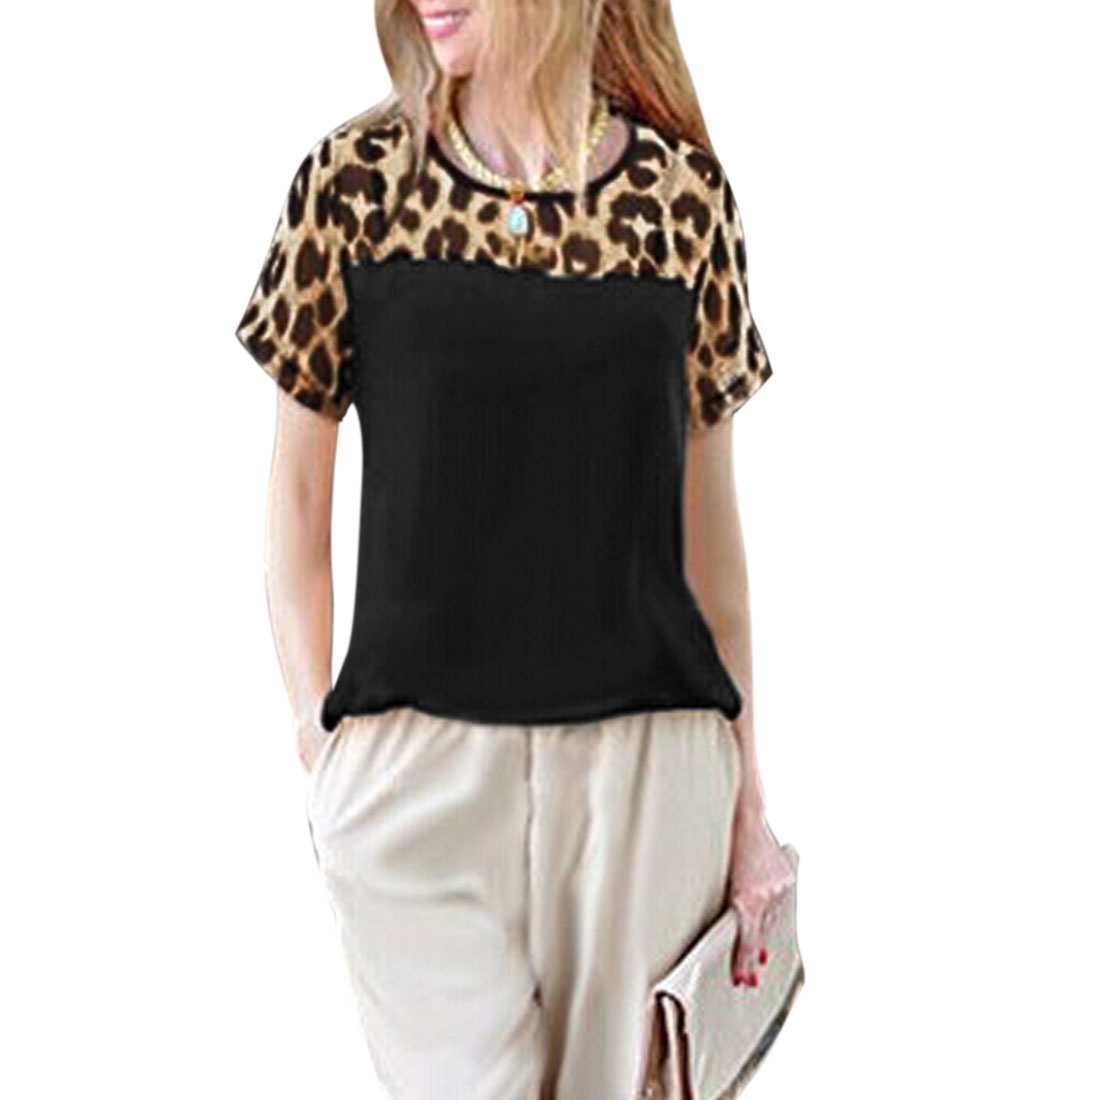 Women's Round Neck Leopard Prints Semi Sheer Summer T Shirts Black XS